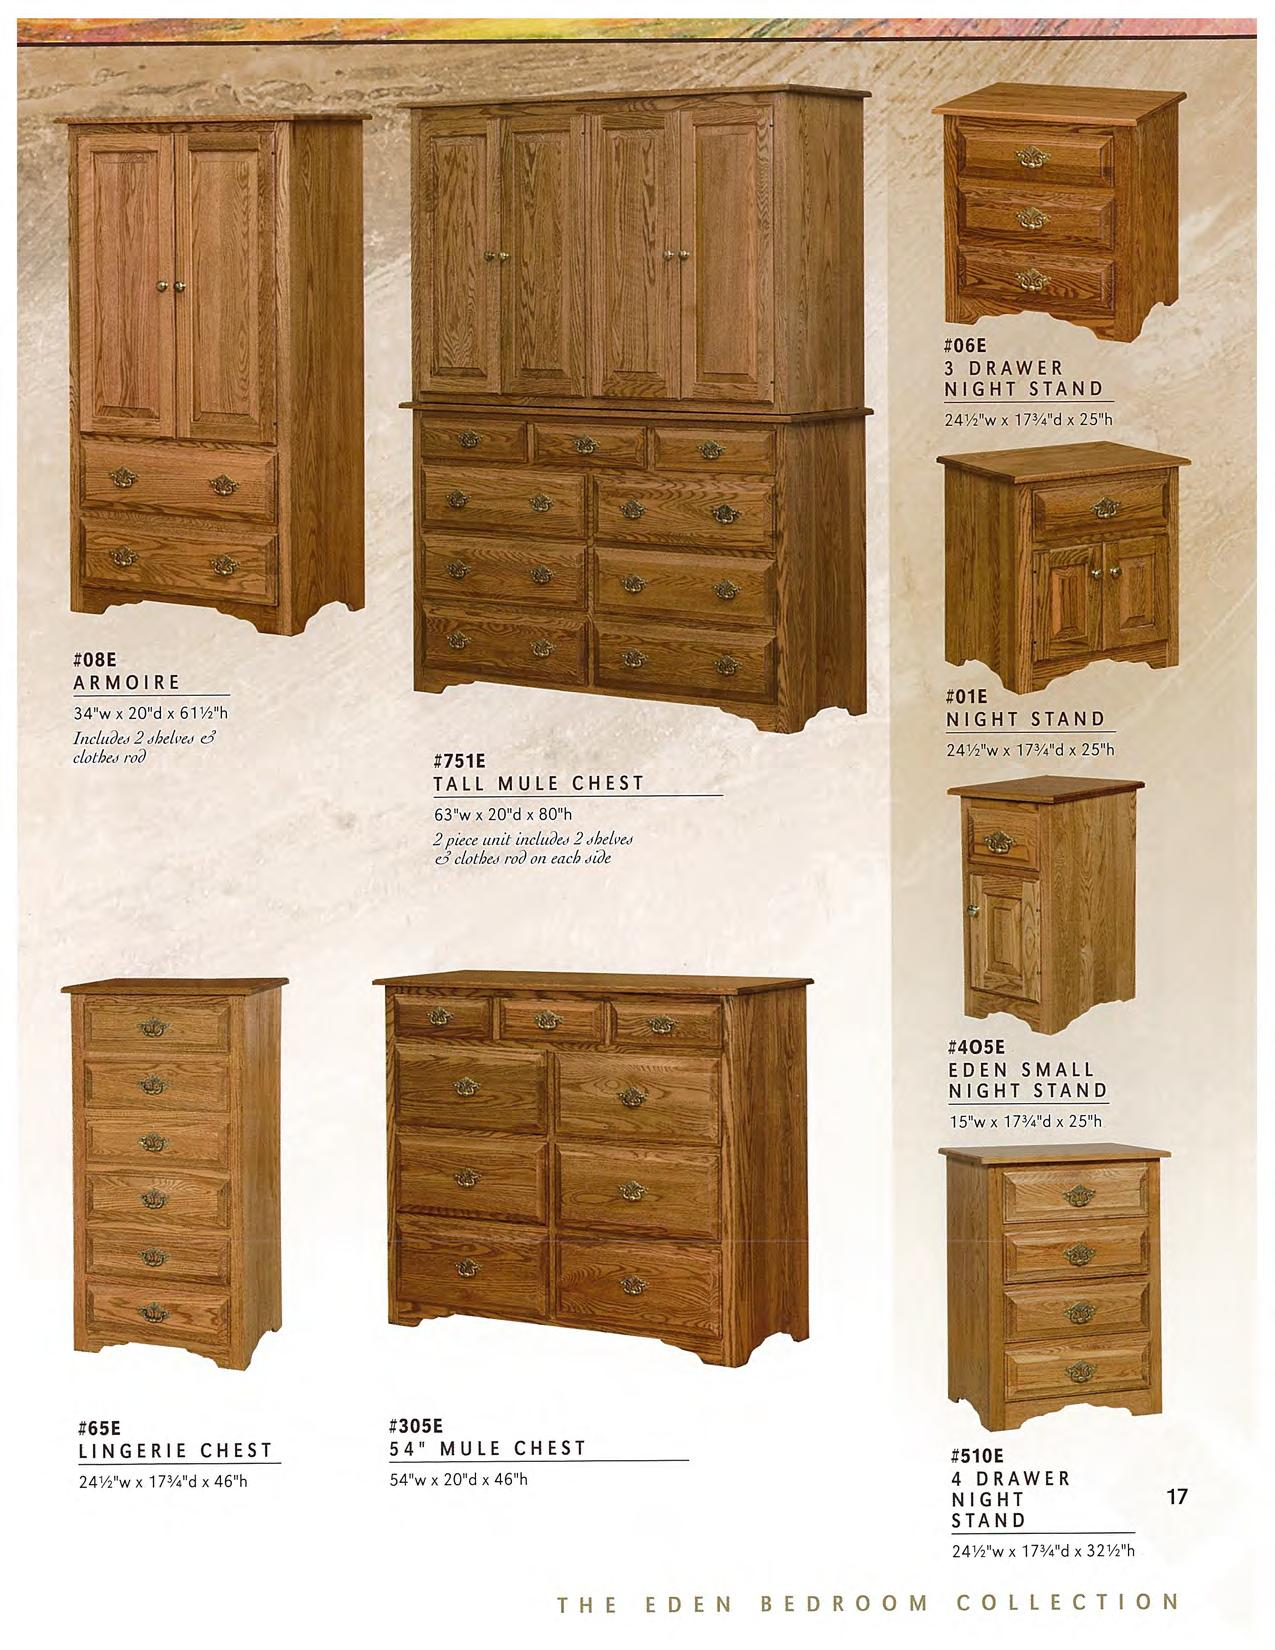 furniture-page-017